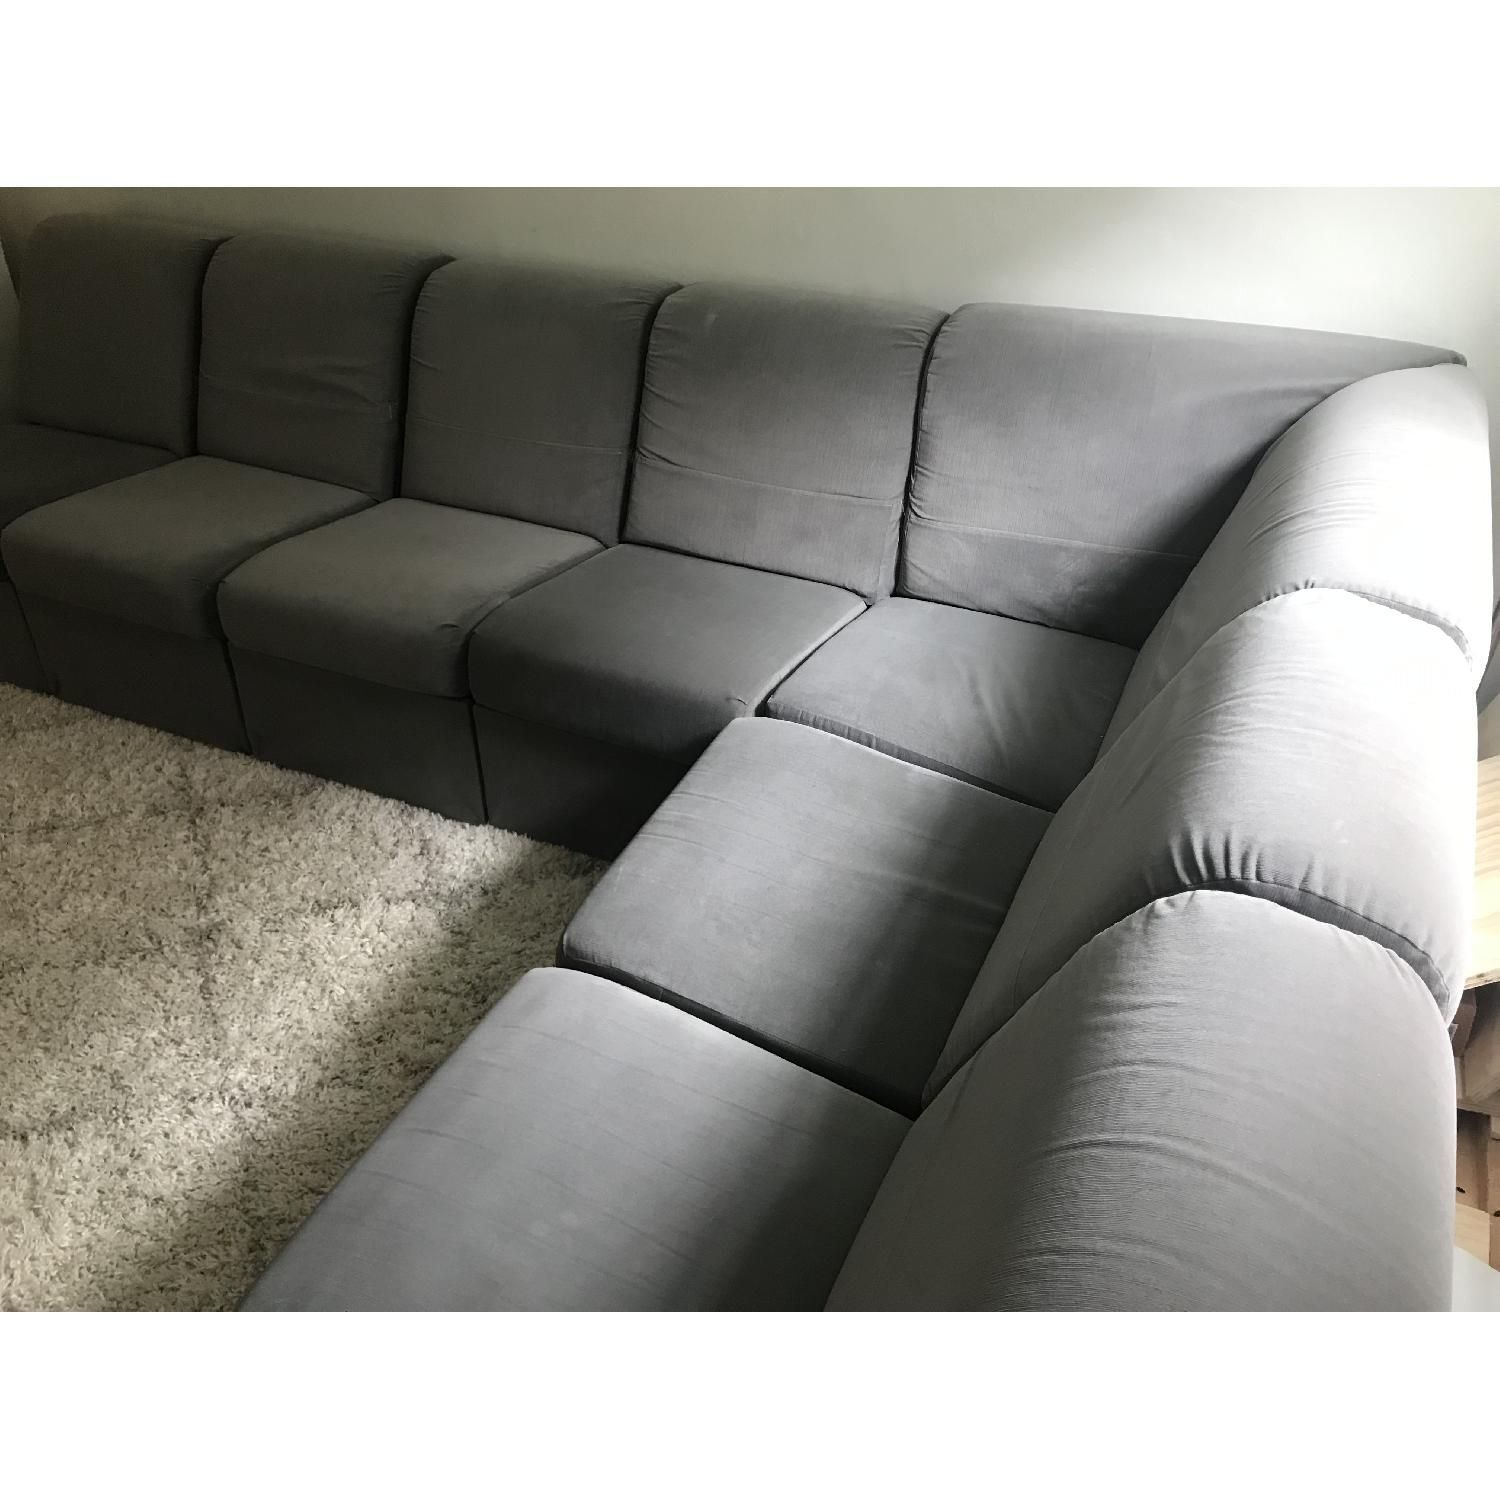 Home Reserve Interchangeable Storage Sectional Sofa Grey